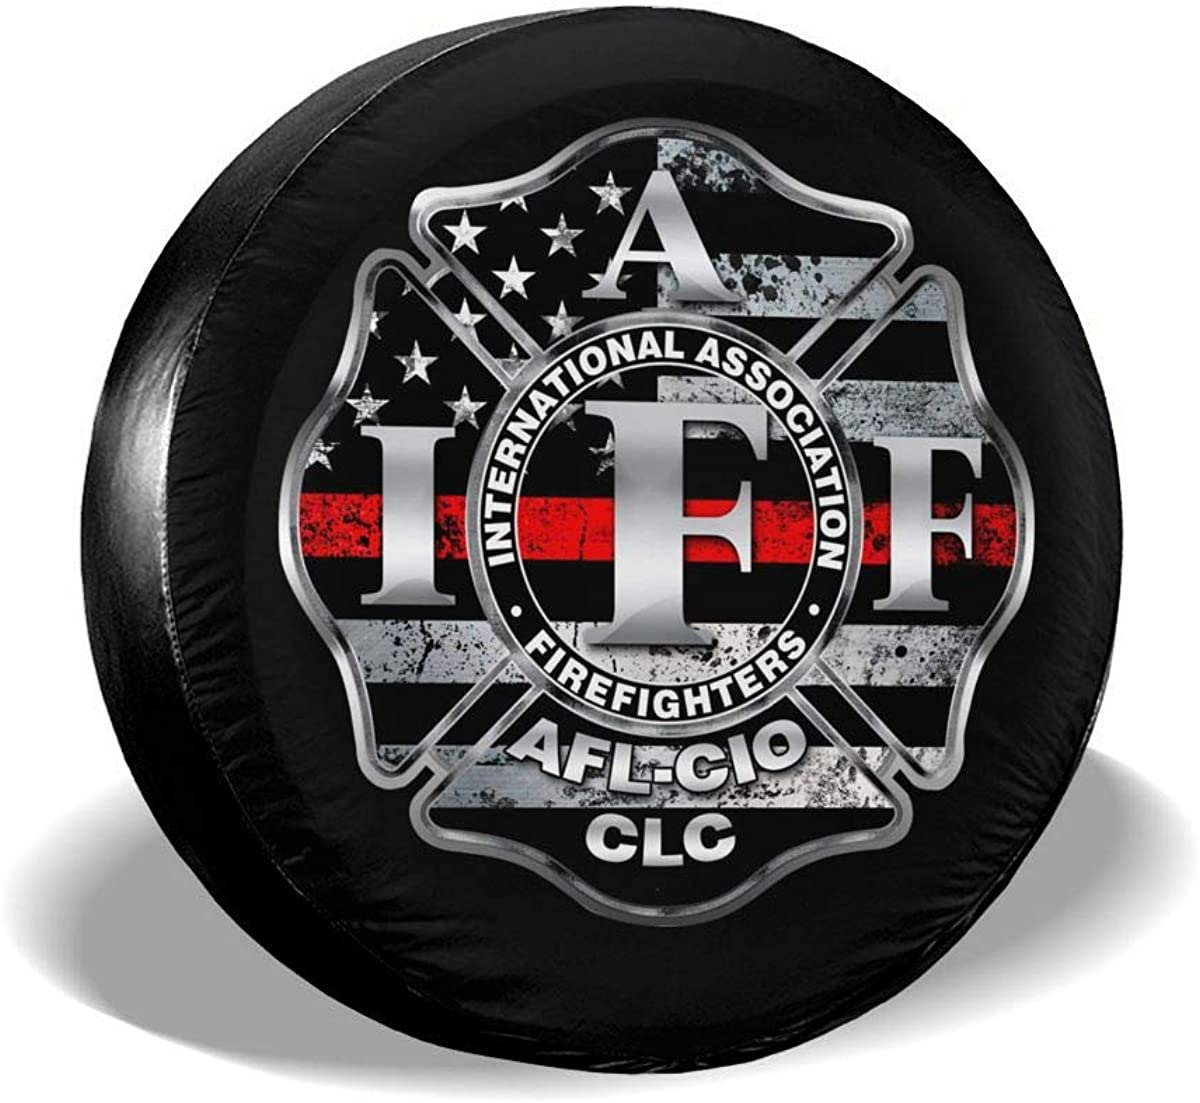 JSOY GSTW IAFF Fire Fighters Red Blue Line Spare Wheel Tire Covers Travel Trailer Accessories 14,15,16,17 Inch